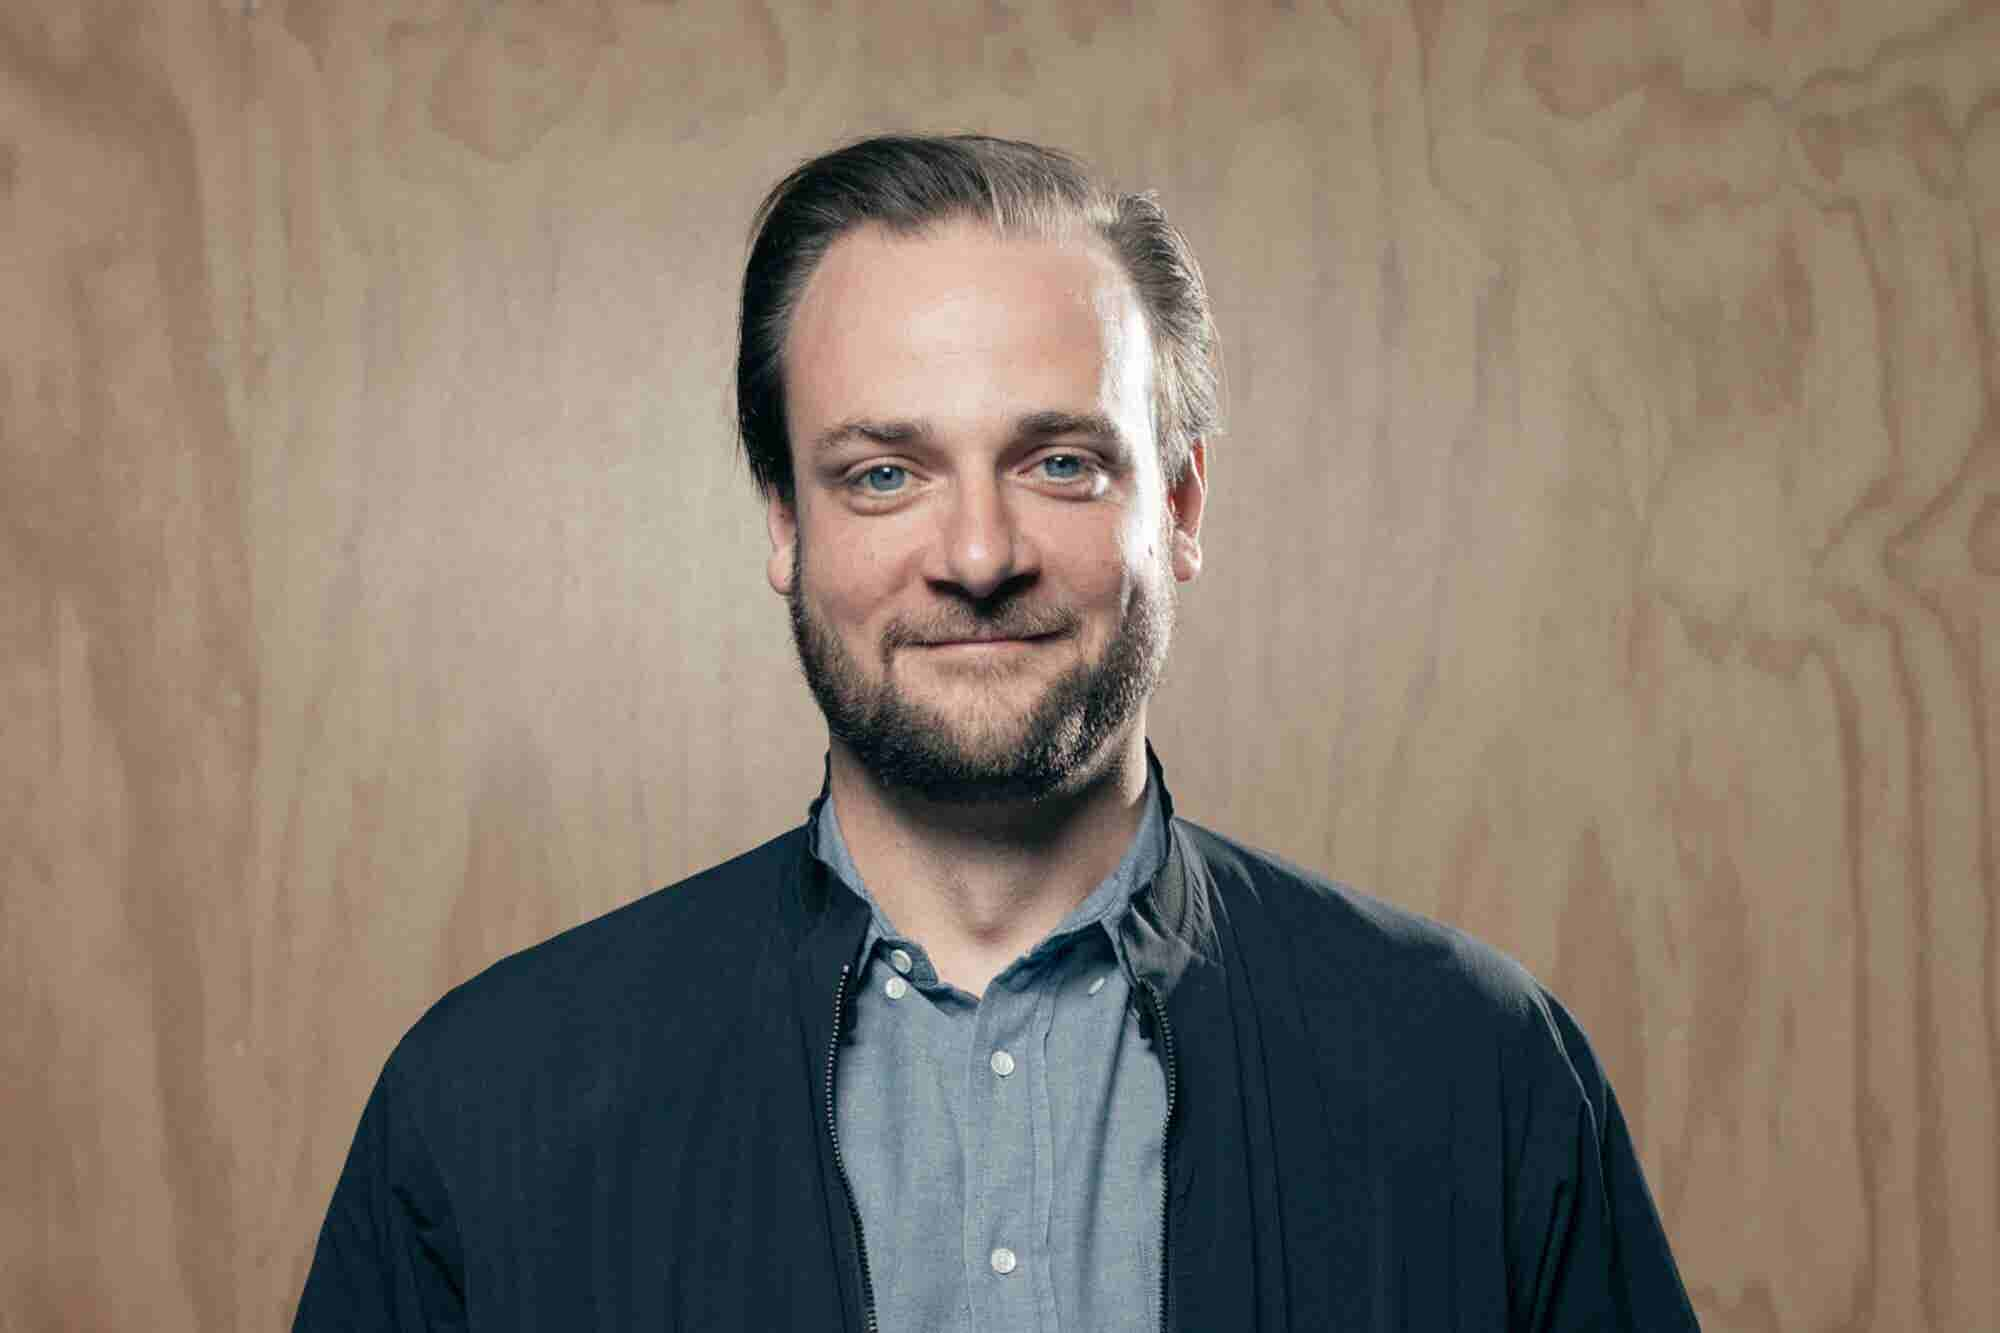 Pinterest Co-Founder Shares the Simple Step He Took to Transform His Communication Style